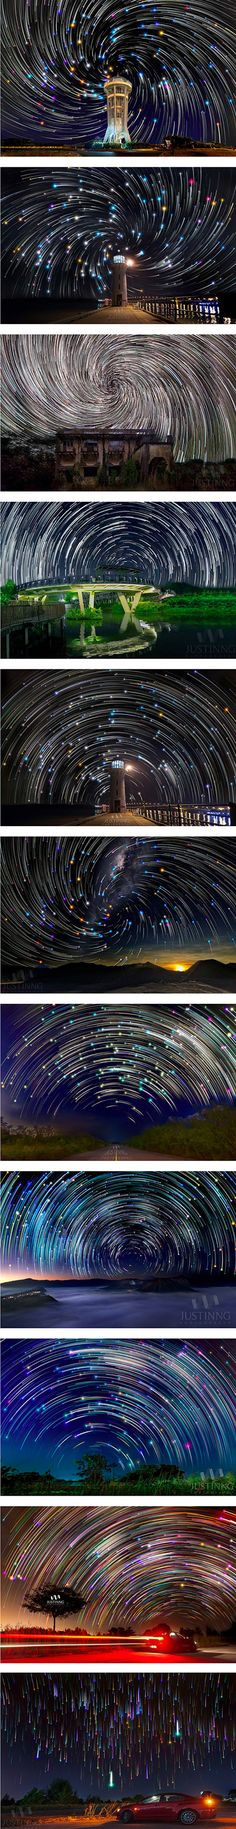 Singapore-based astrophotographer Justin Ng takes long exposures of his native country's night skies, capturing spectacular, spiraling displays of star trails.